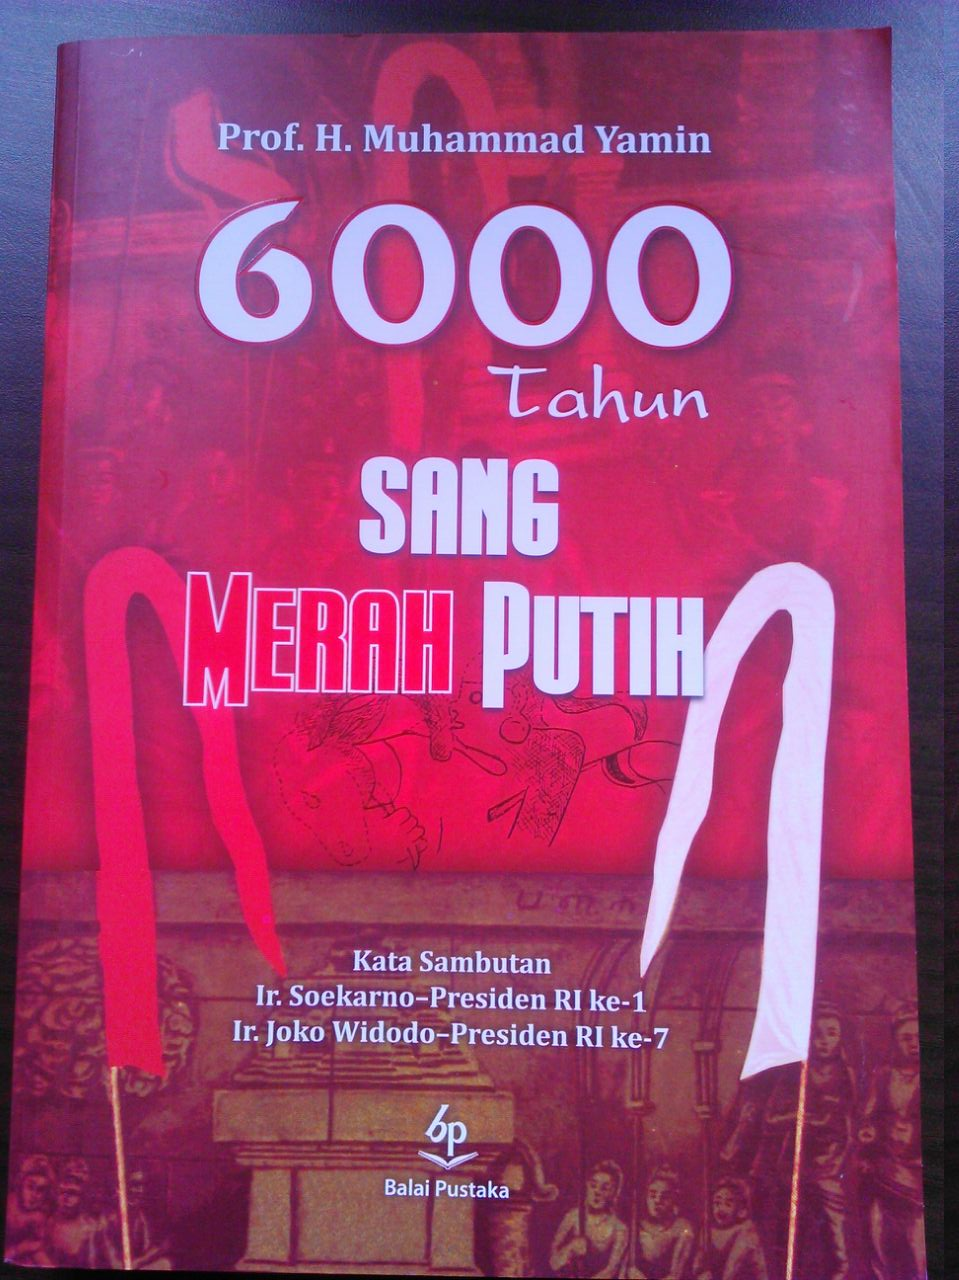 Menguak makna Sang Merah Putih